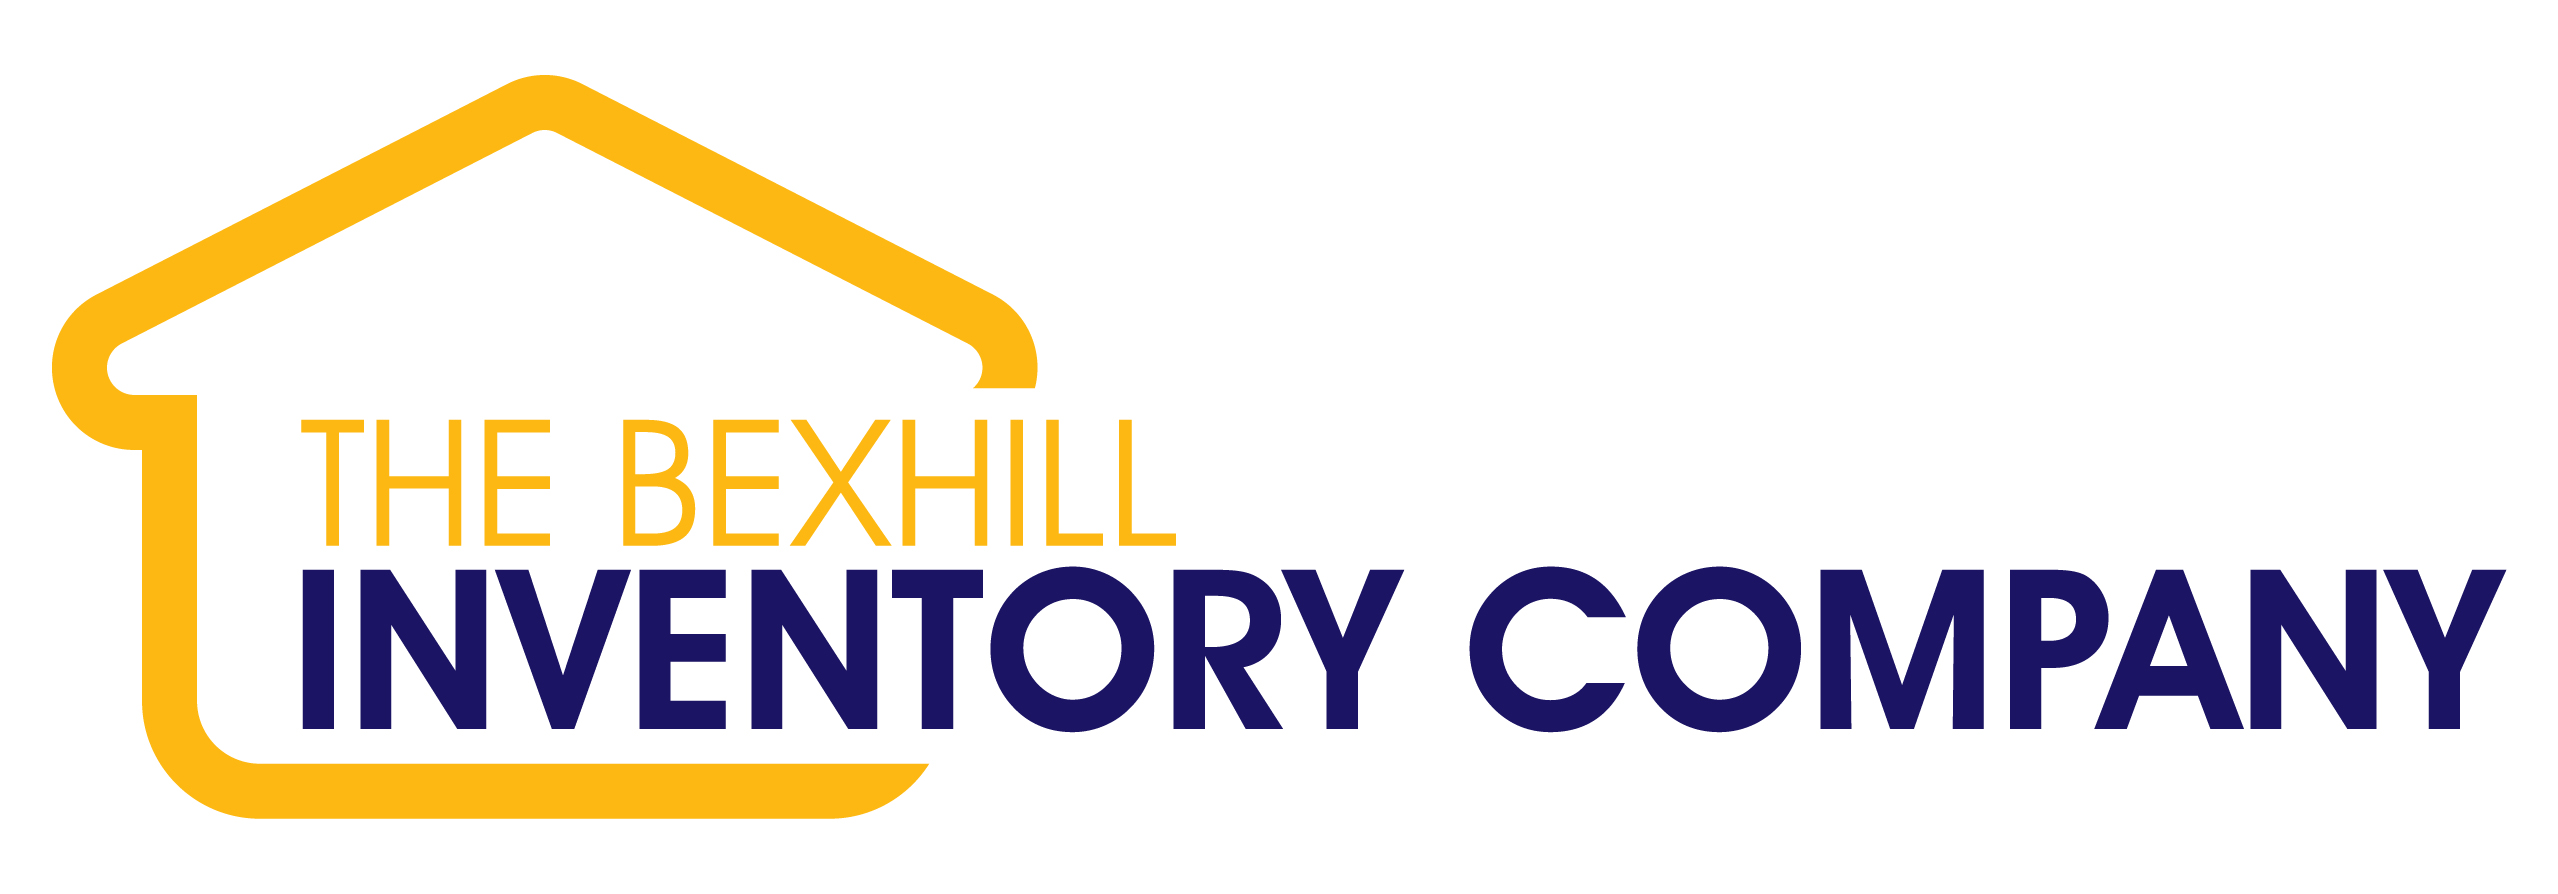 Bexhill Inventory Company Logo